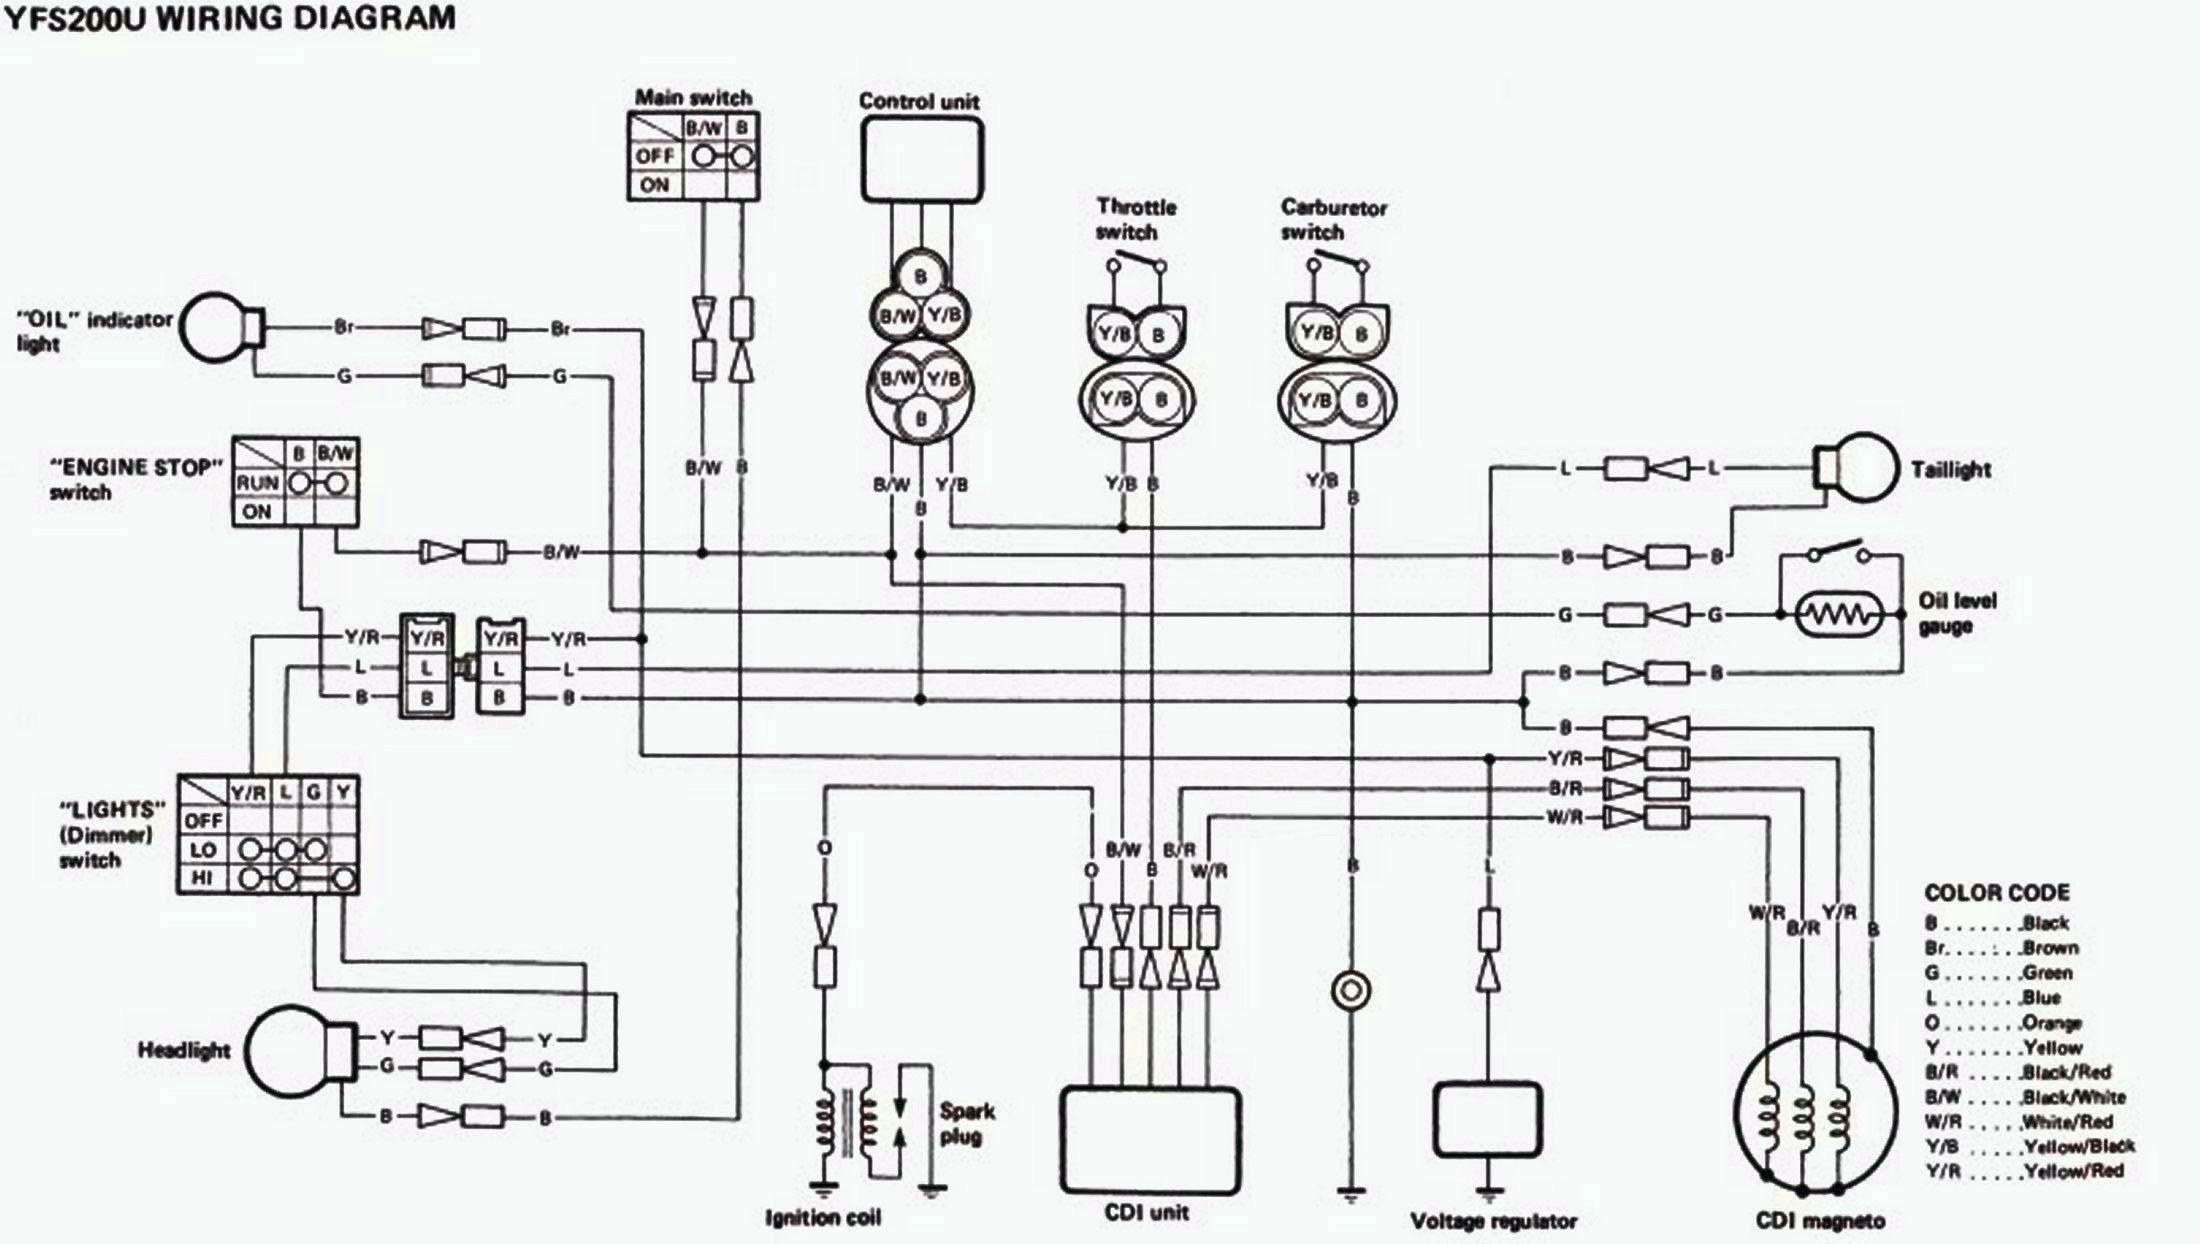 Stock wiring diagrams- | Blasterforum.com | 1998 200 Yamaha Blaster Wiring Diagram |  | Yamaha Blaster Forum